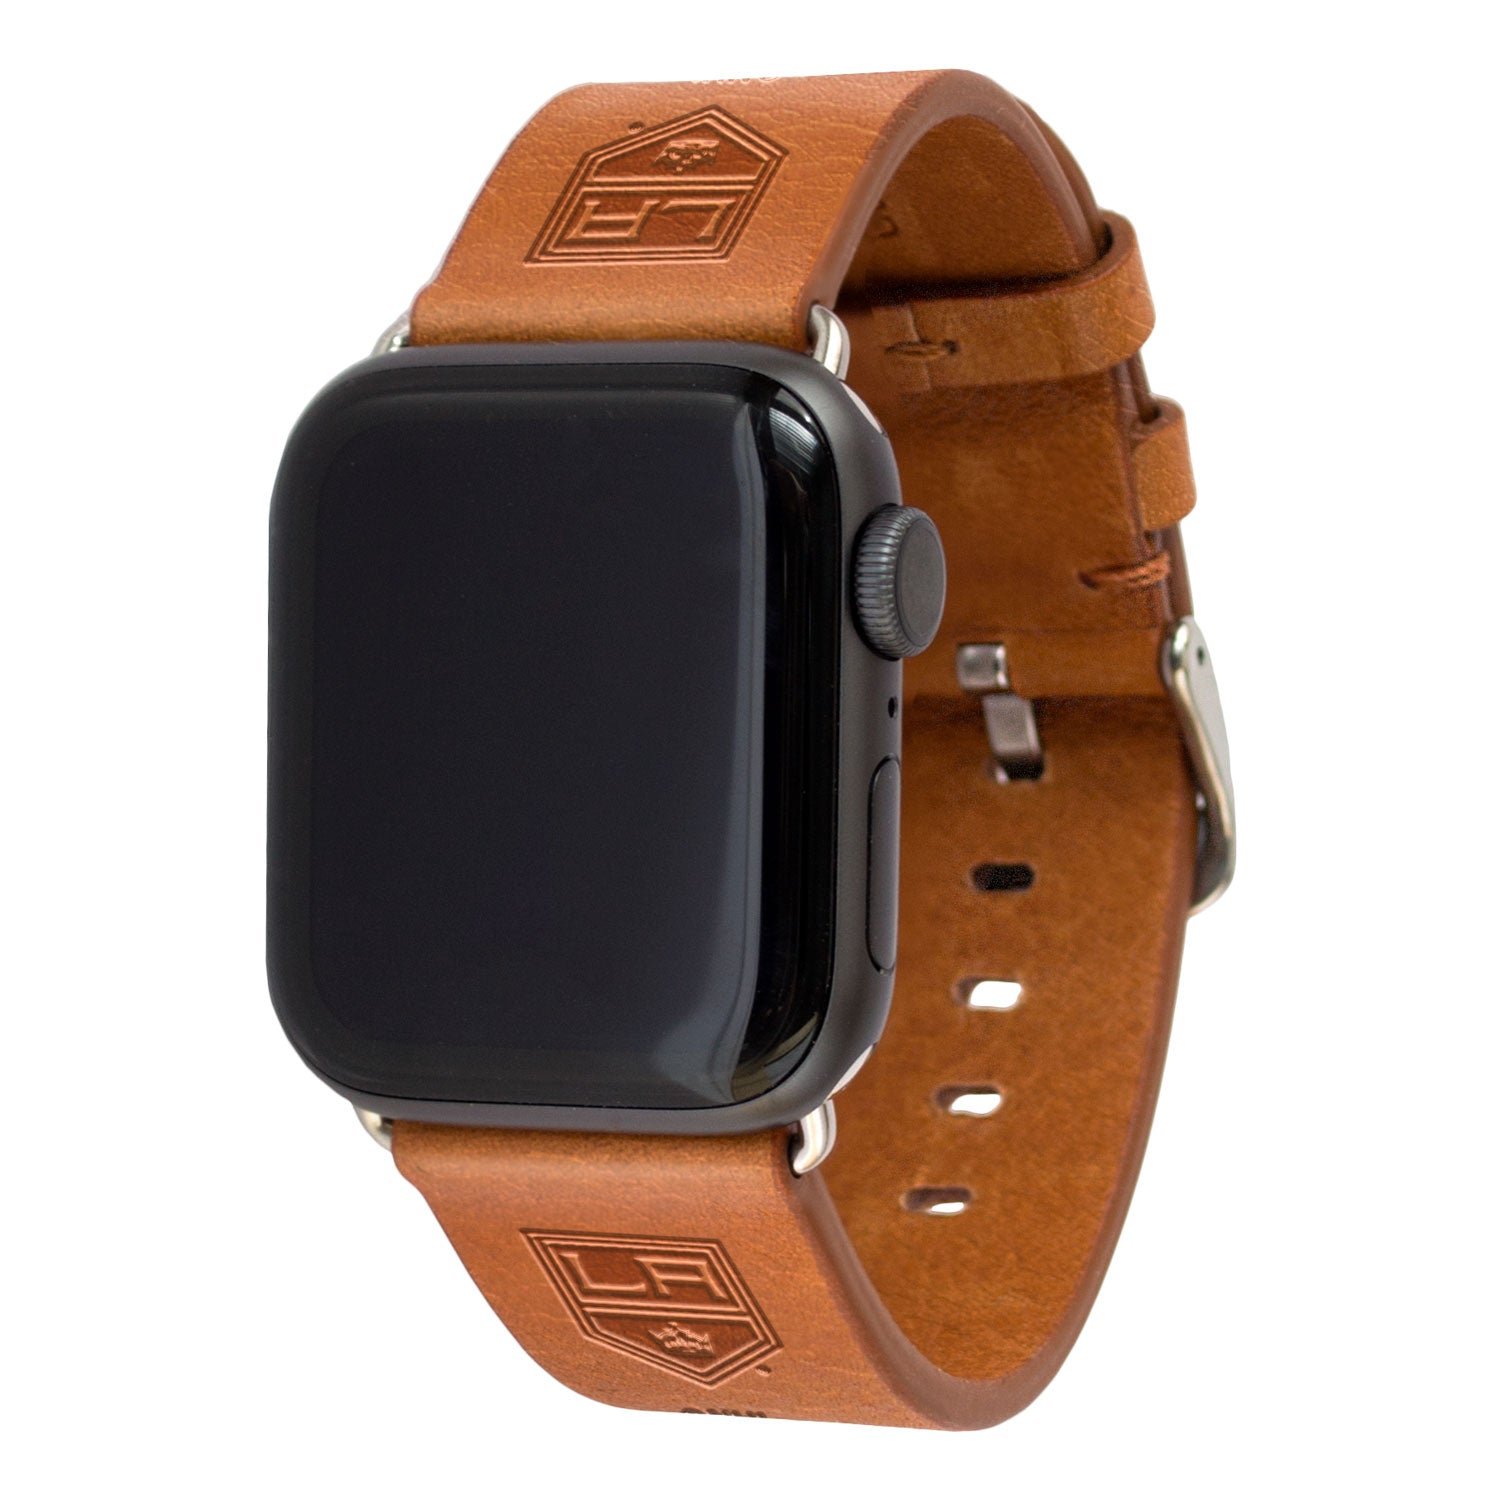 Los Angeles Kings Leather Apple Watch Band - AffinityBands